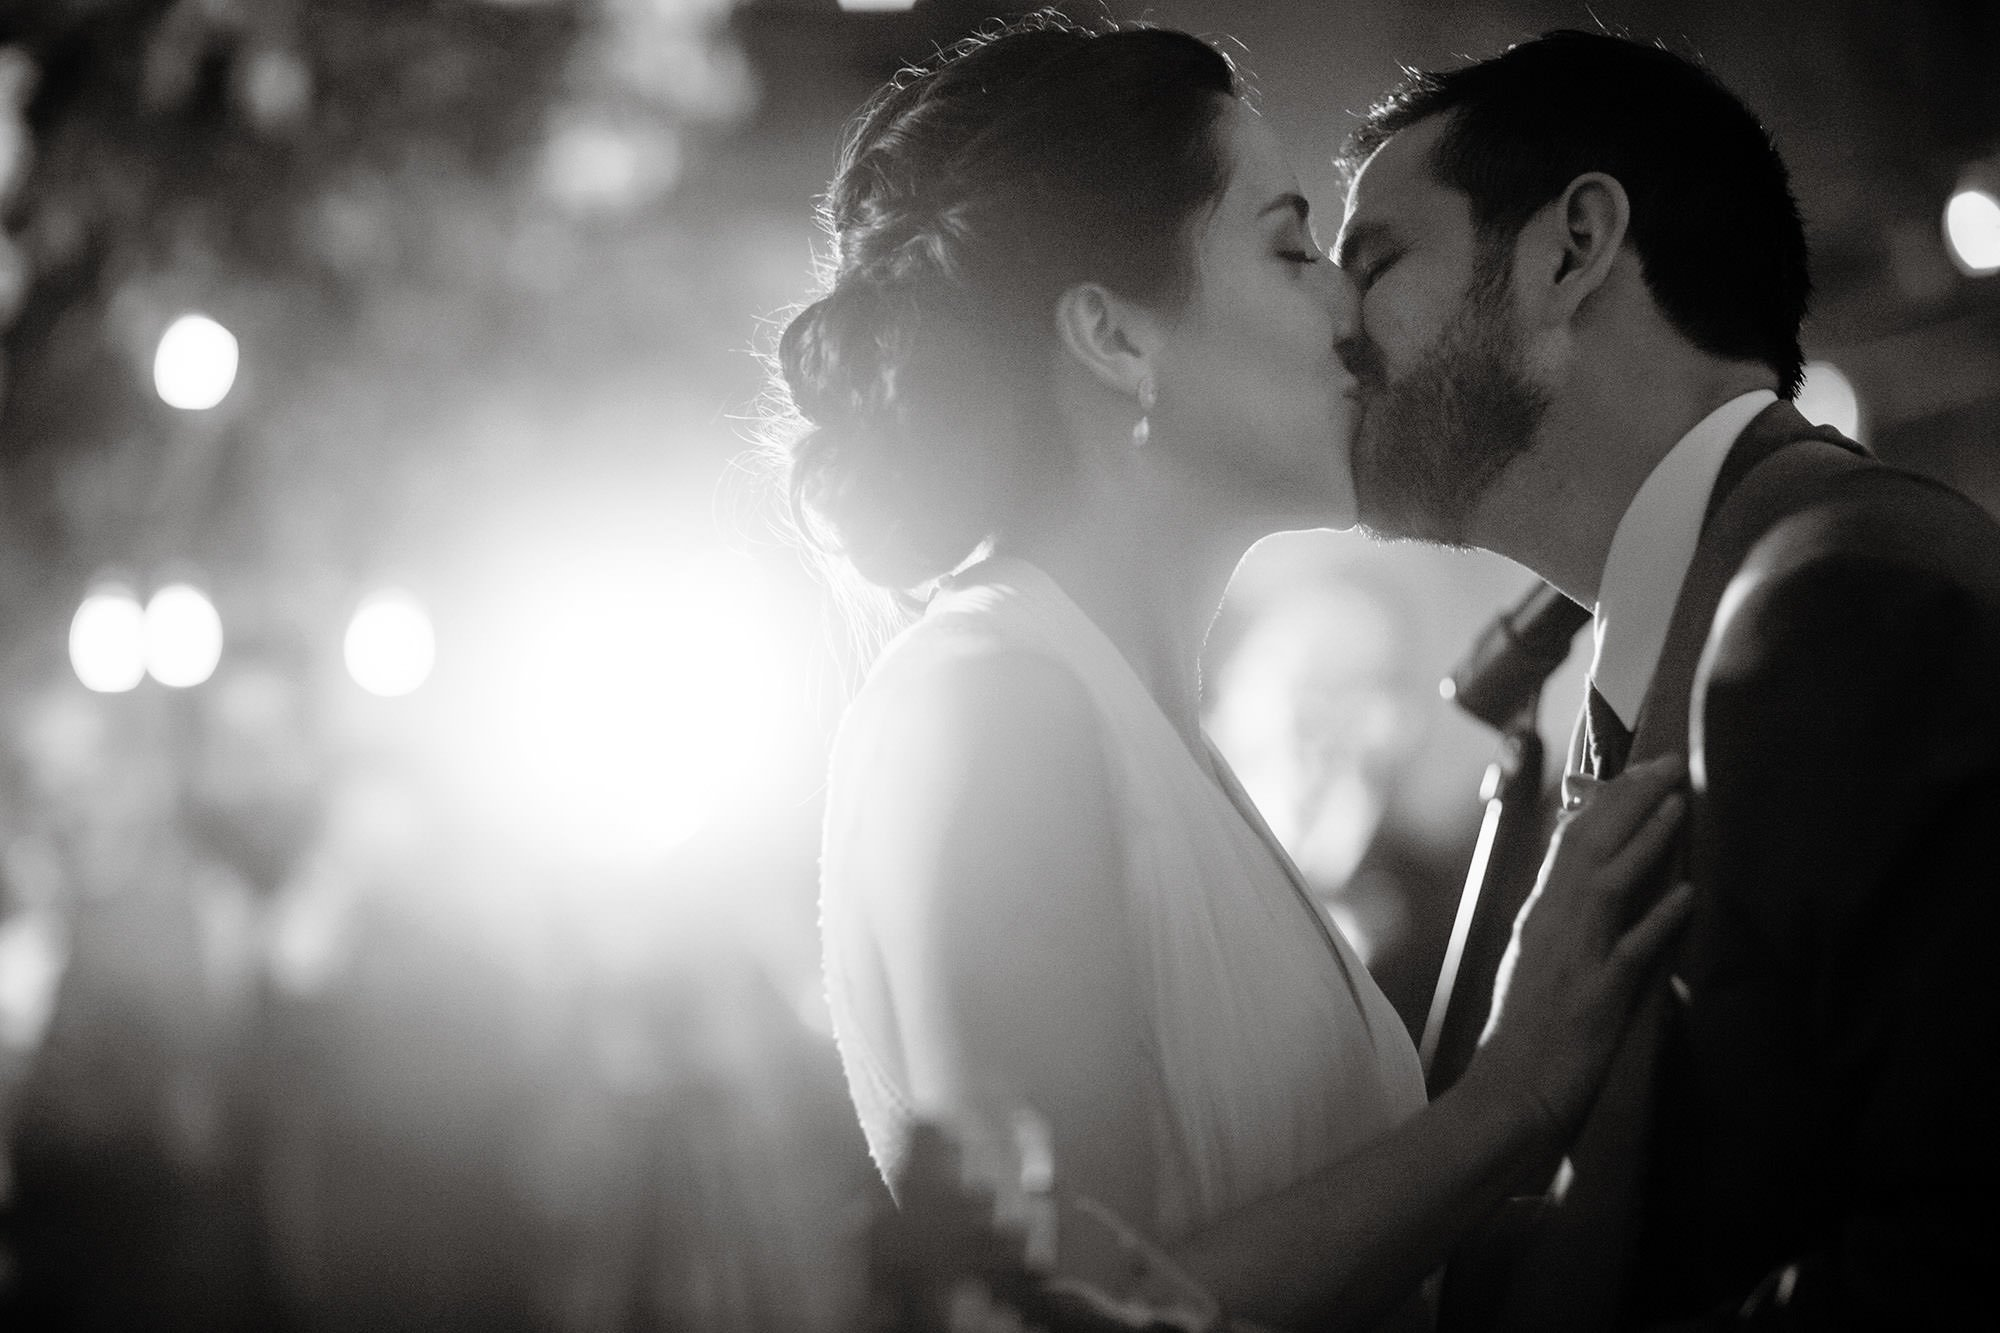 The Bride and Groom Kiss During the Reception at Longview Gallery.